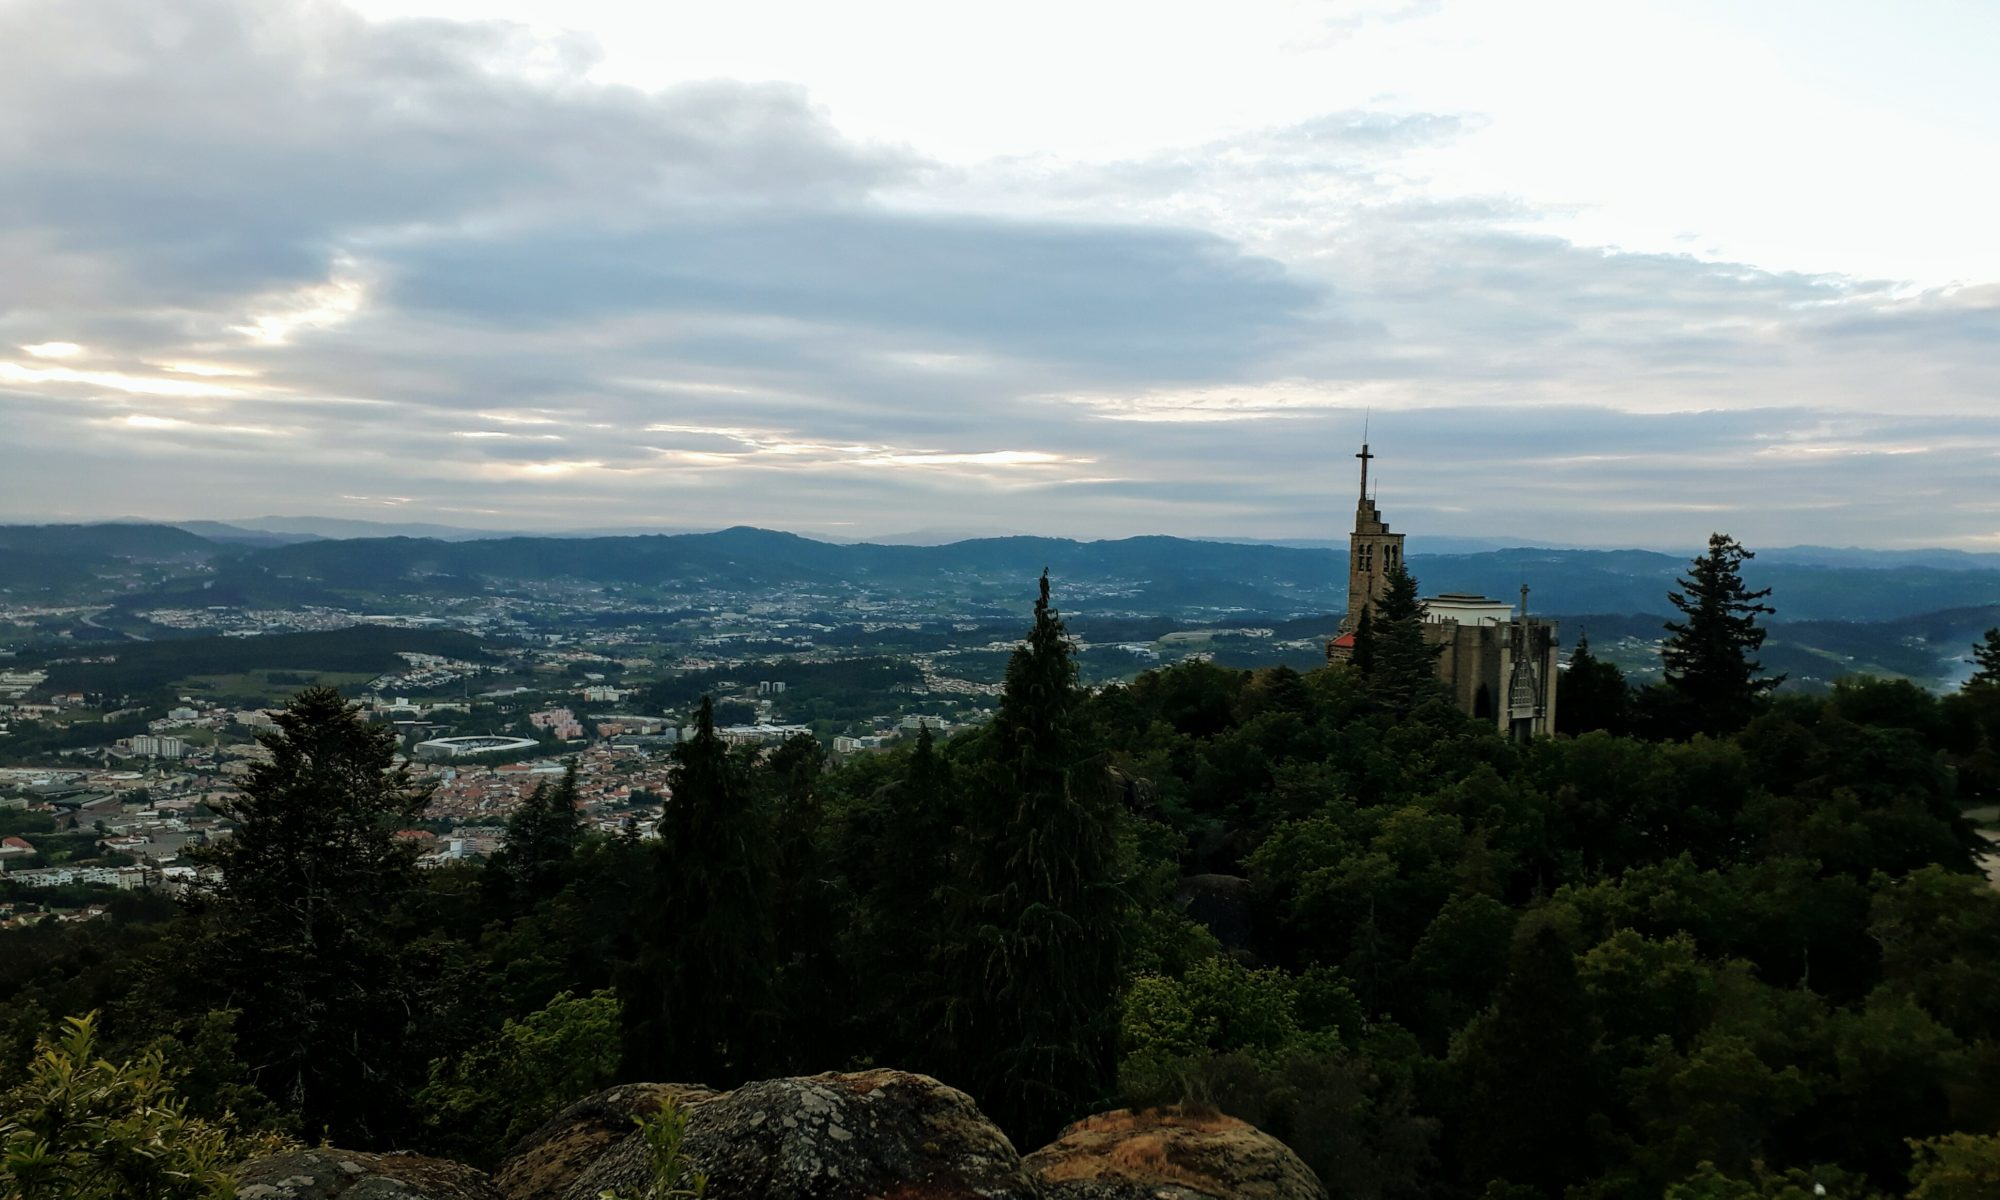 View of the Santuário da Penha from the Serra da Penha or Monte de Santa Catarina